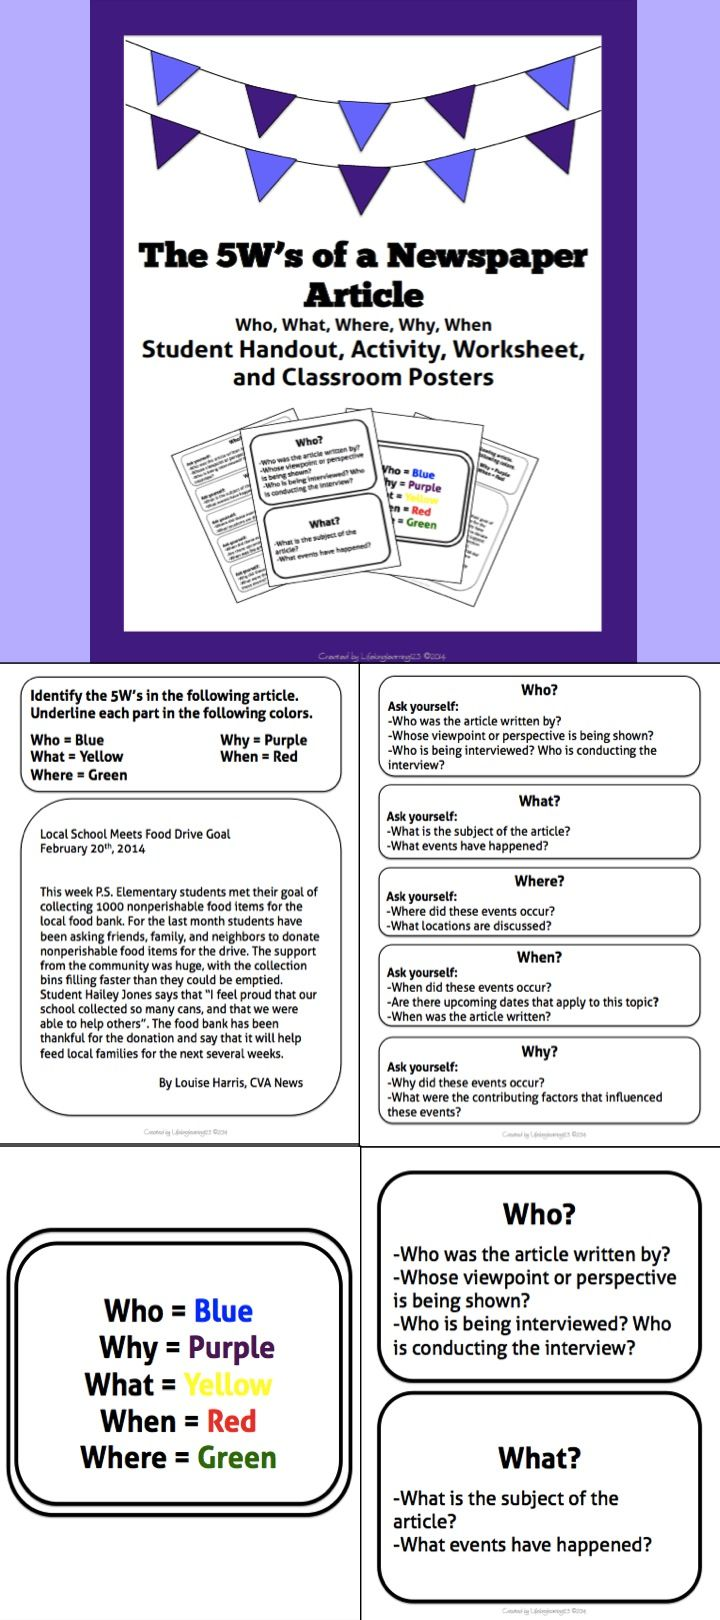 The WS Of A Newspaper Article Student Activity Handout